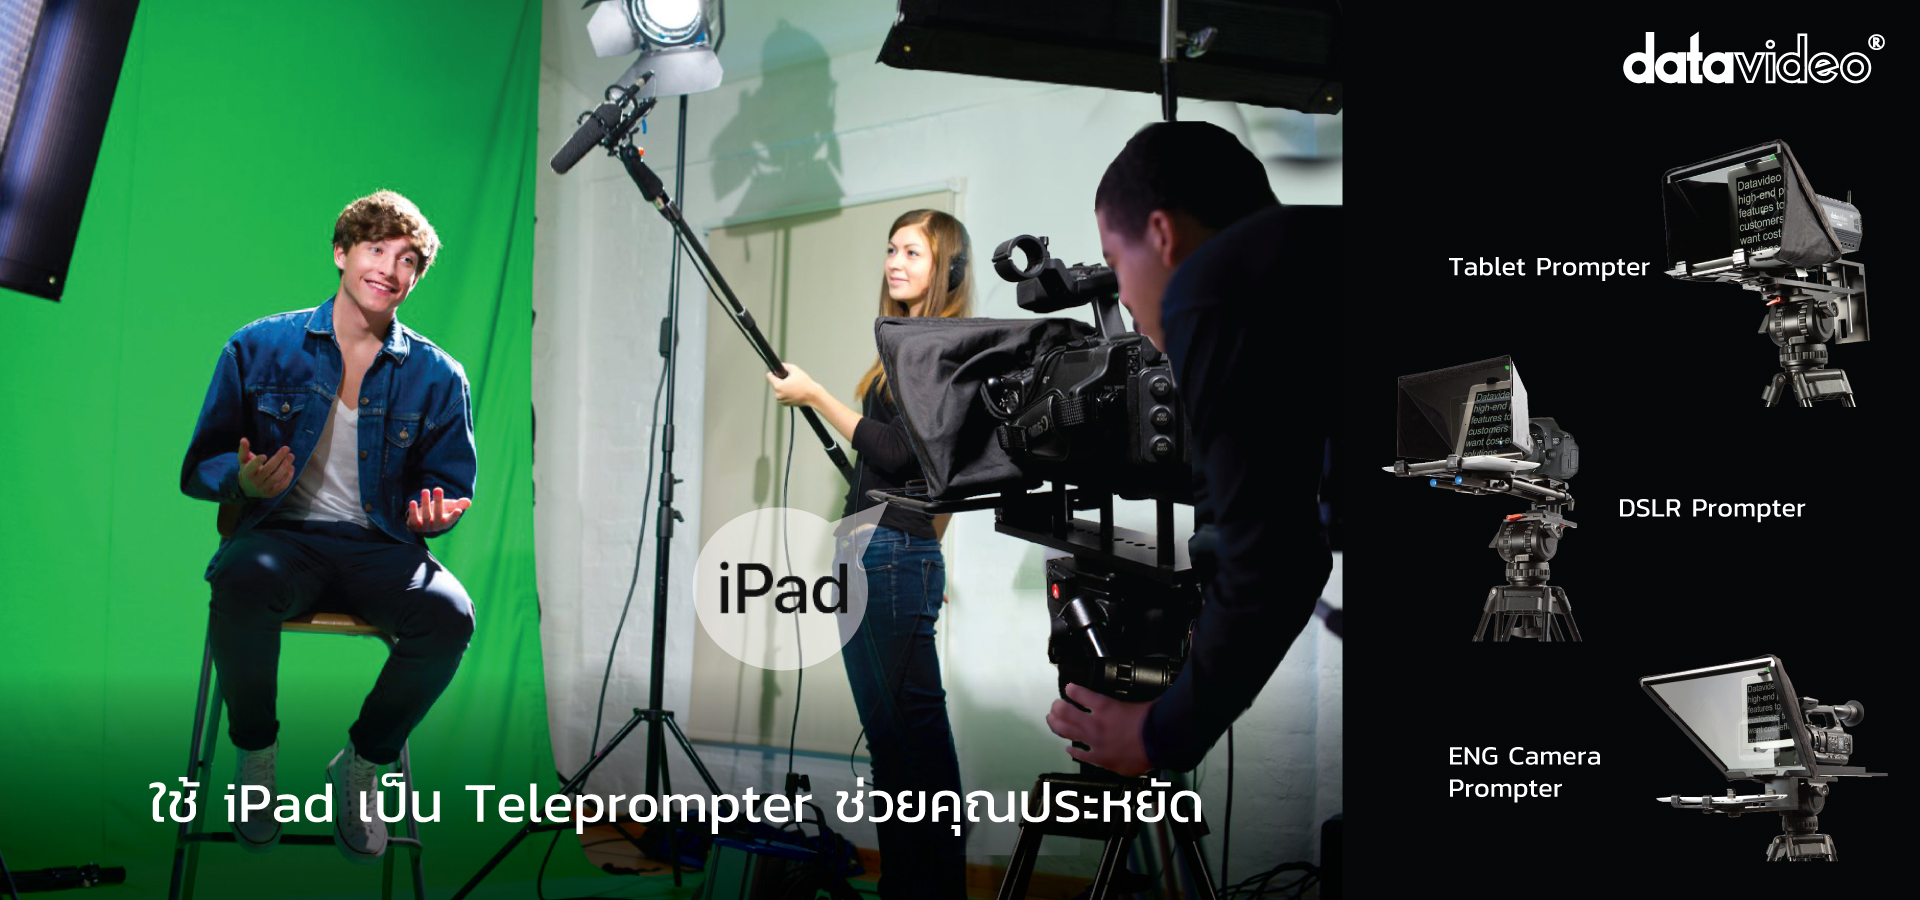 teleprompter-md.jpg